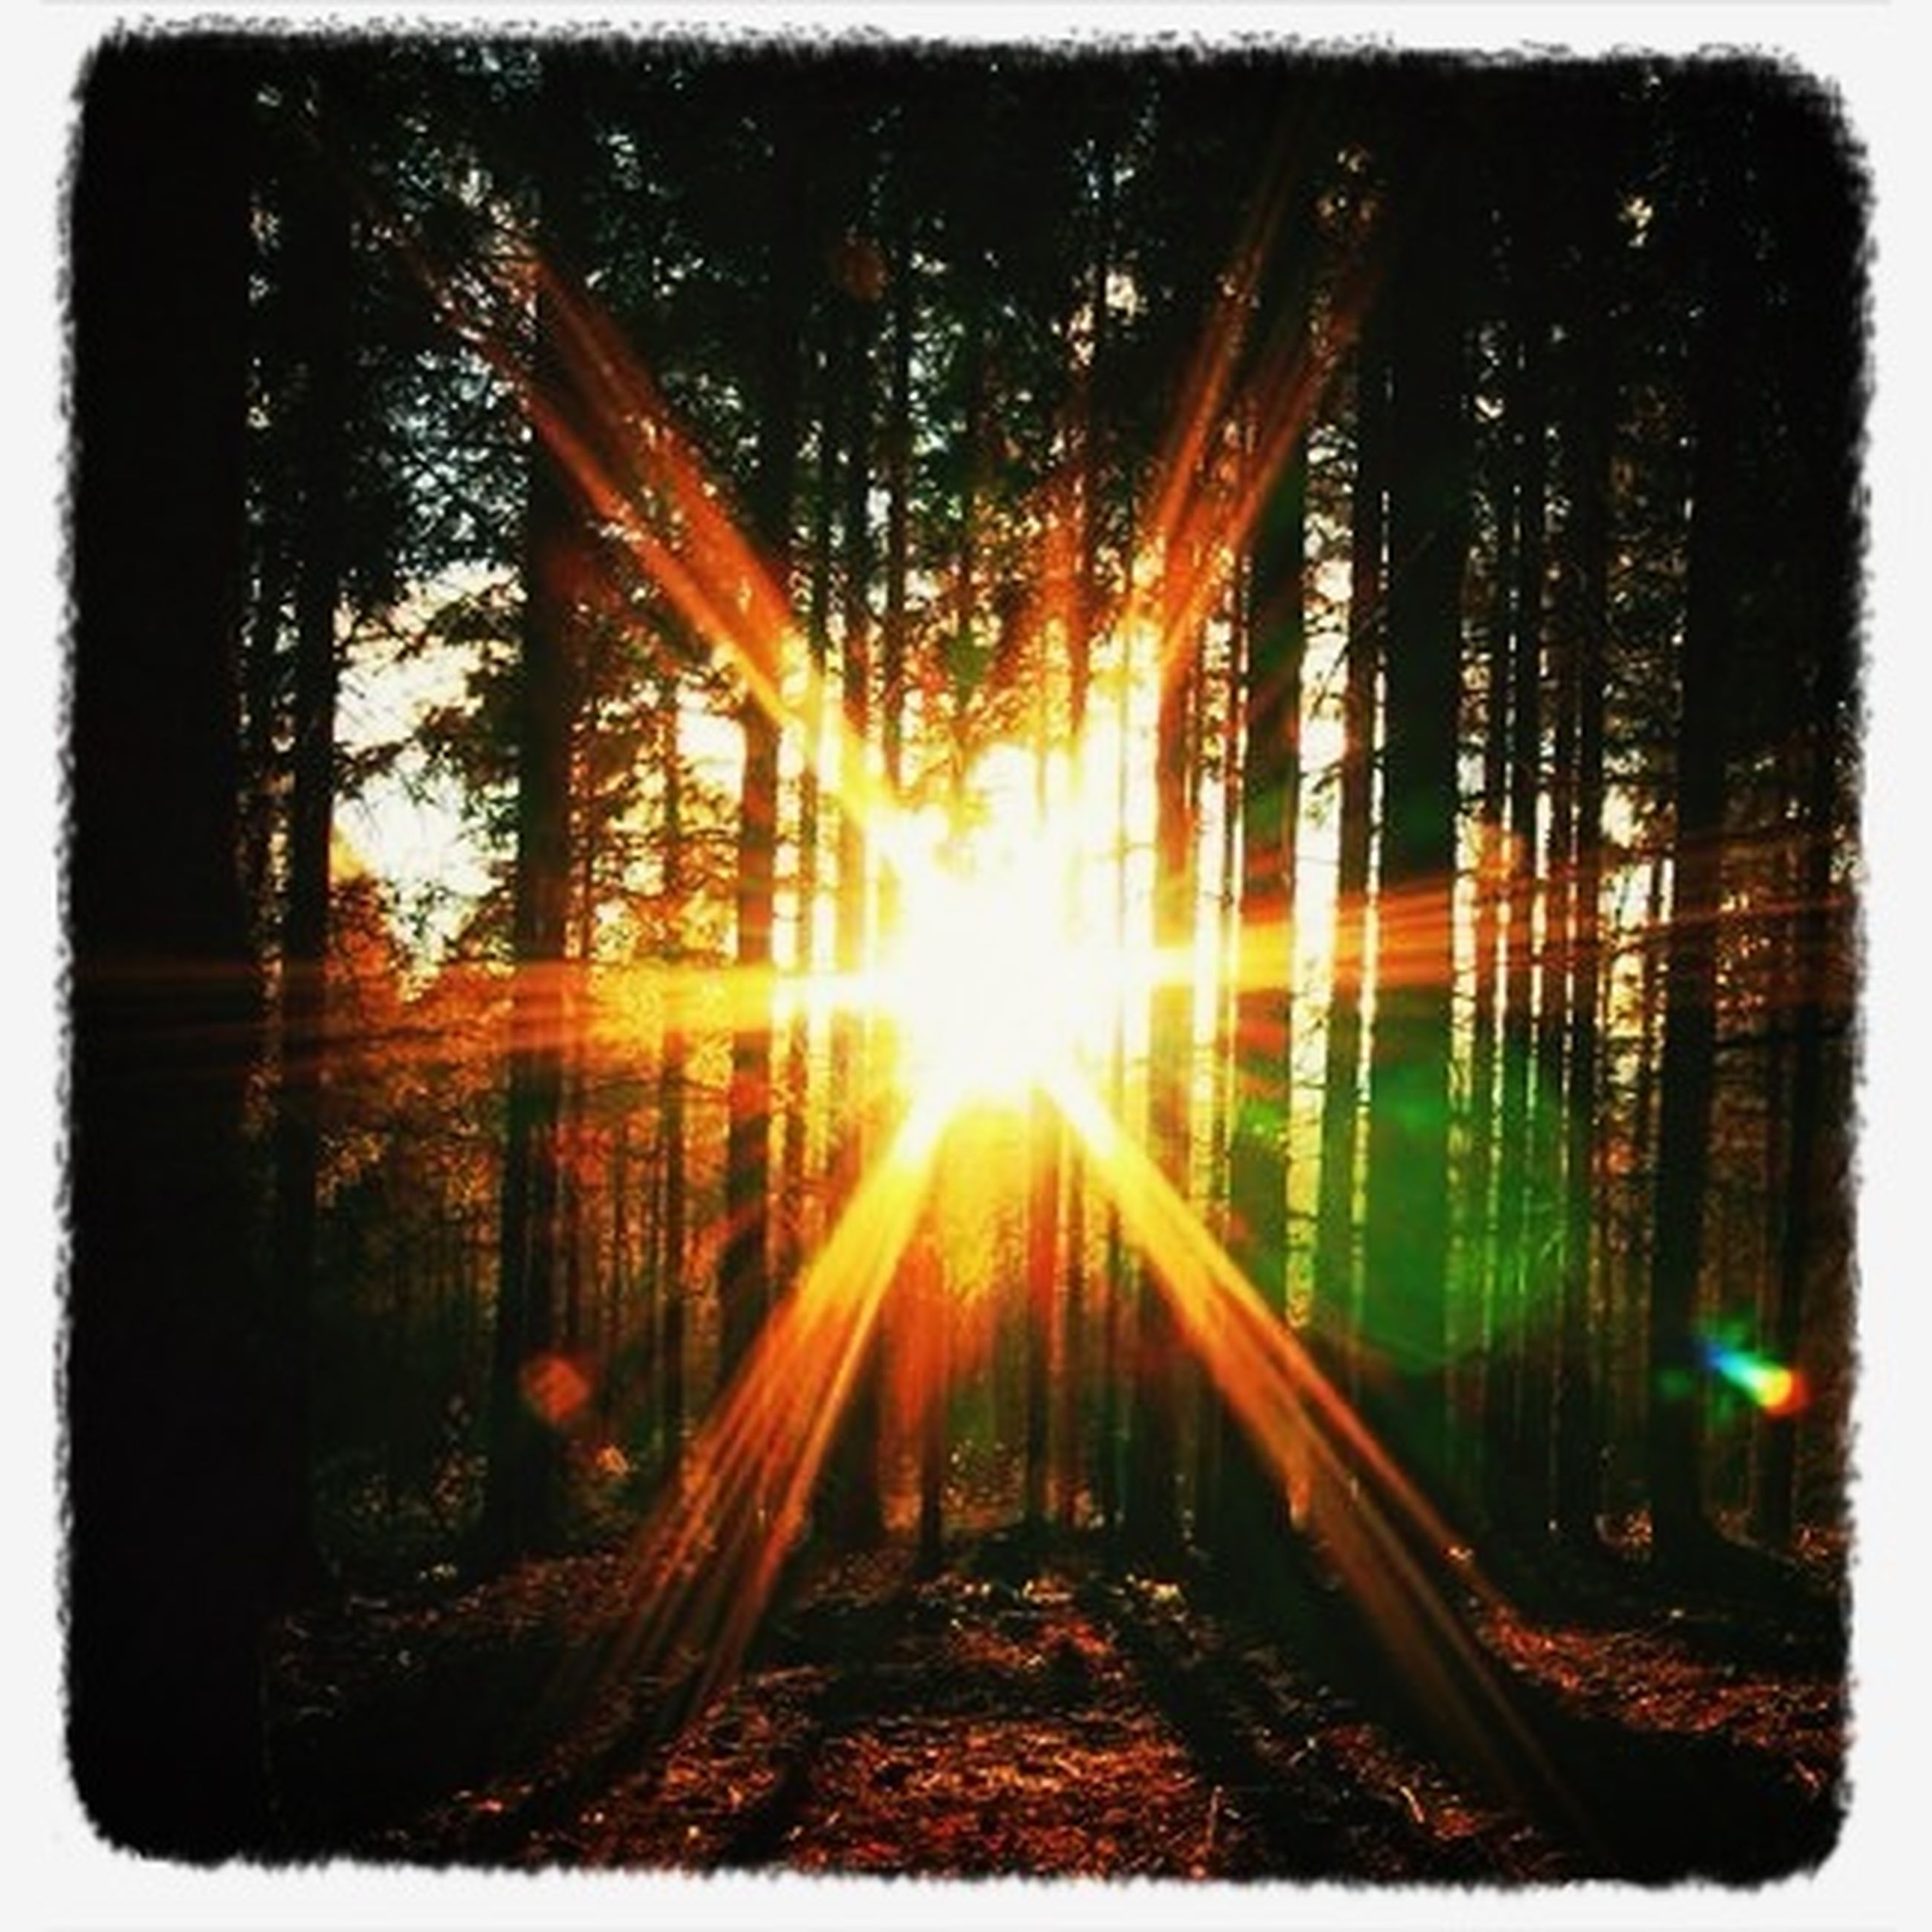 tree, transfer print, sun, sunbeam, lens flare, auto post production filter, sunlight, tranquility, nature, sunset, tranquil scene, forest, scenics, beauty in nature, growth, sky, outdoors, back lit, tree trunk, no people